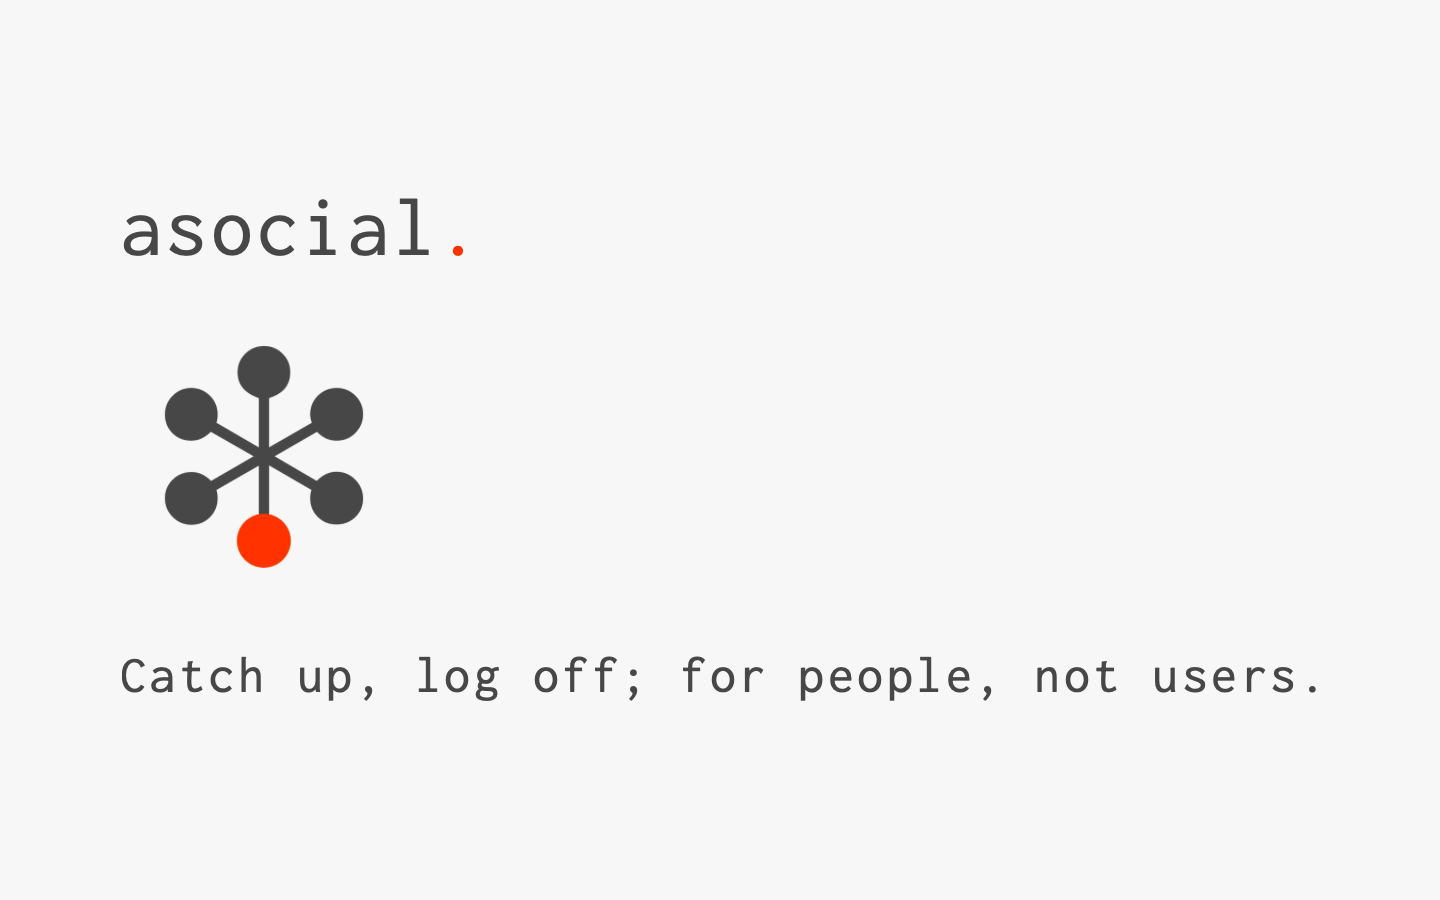 A graphic of the asocial. logo, avatar, and tagline ('Catch up, log off; for people, not users.').